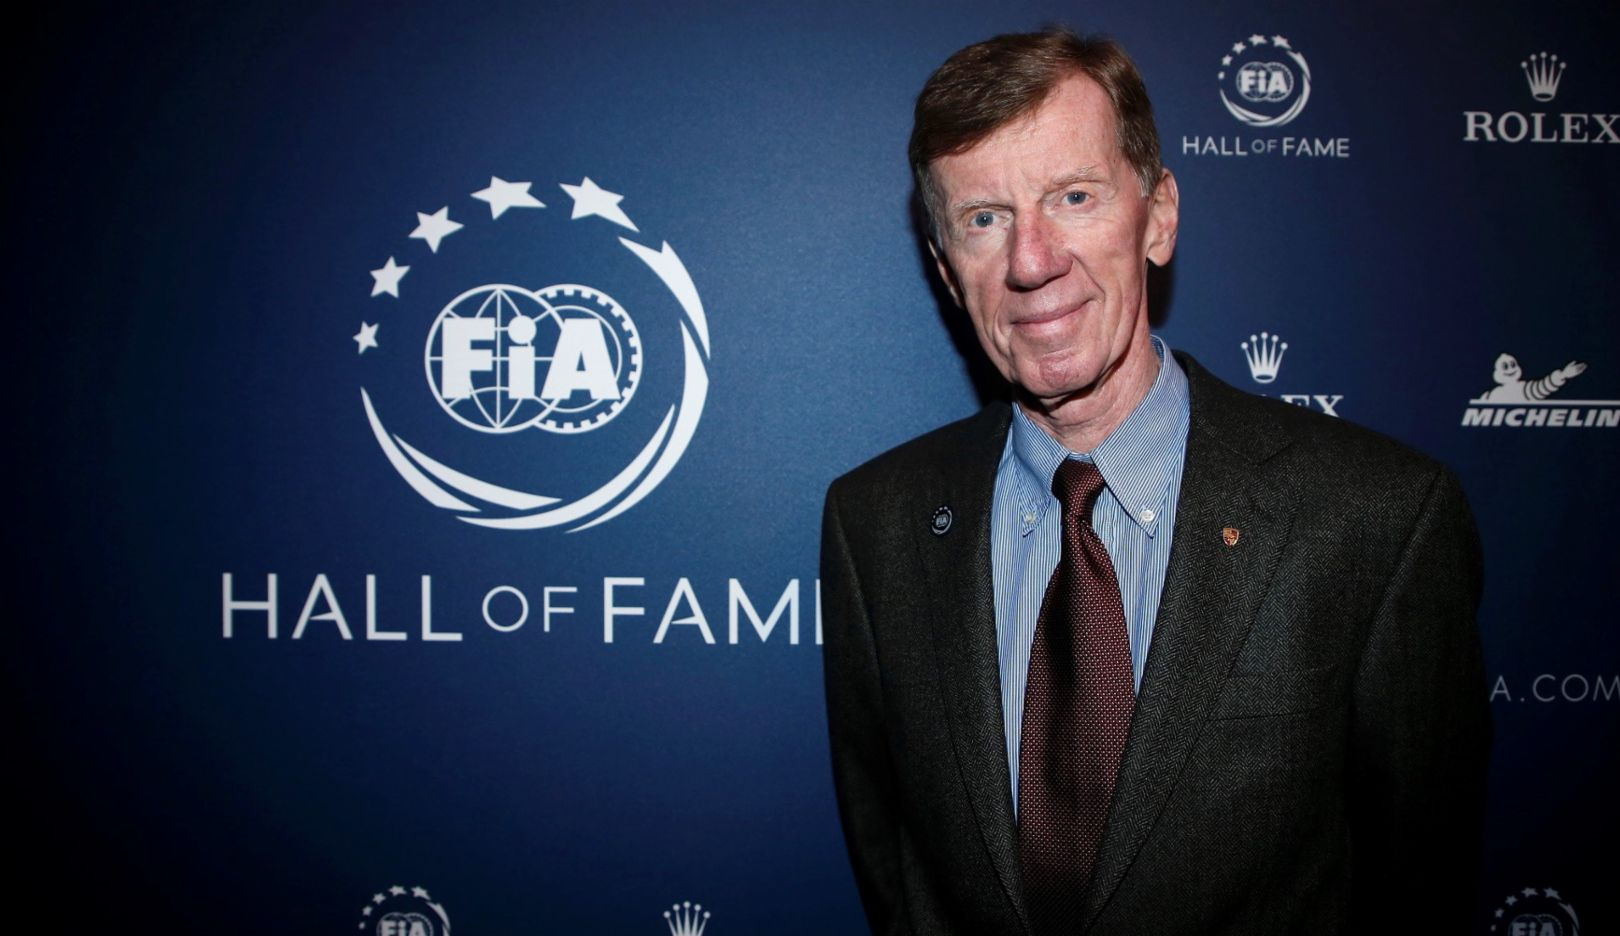 Walter Röhrl, FIA Hall of Fame, Paris, 2019, Porsche AG